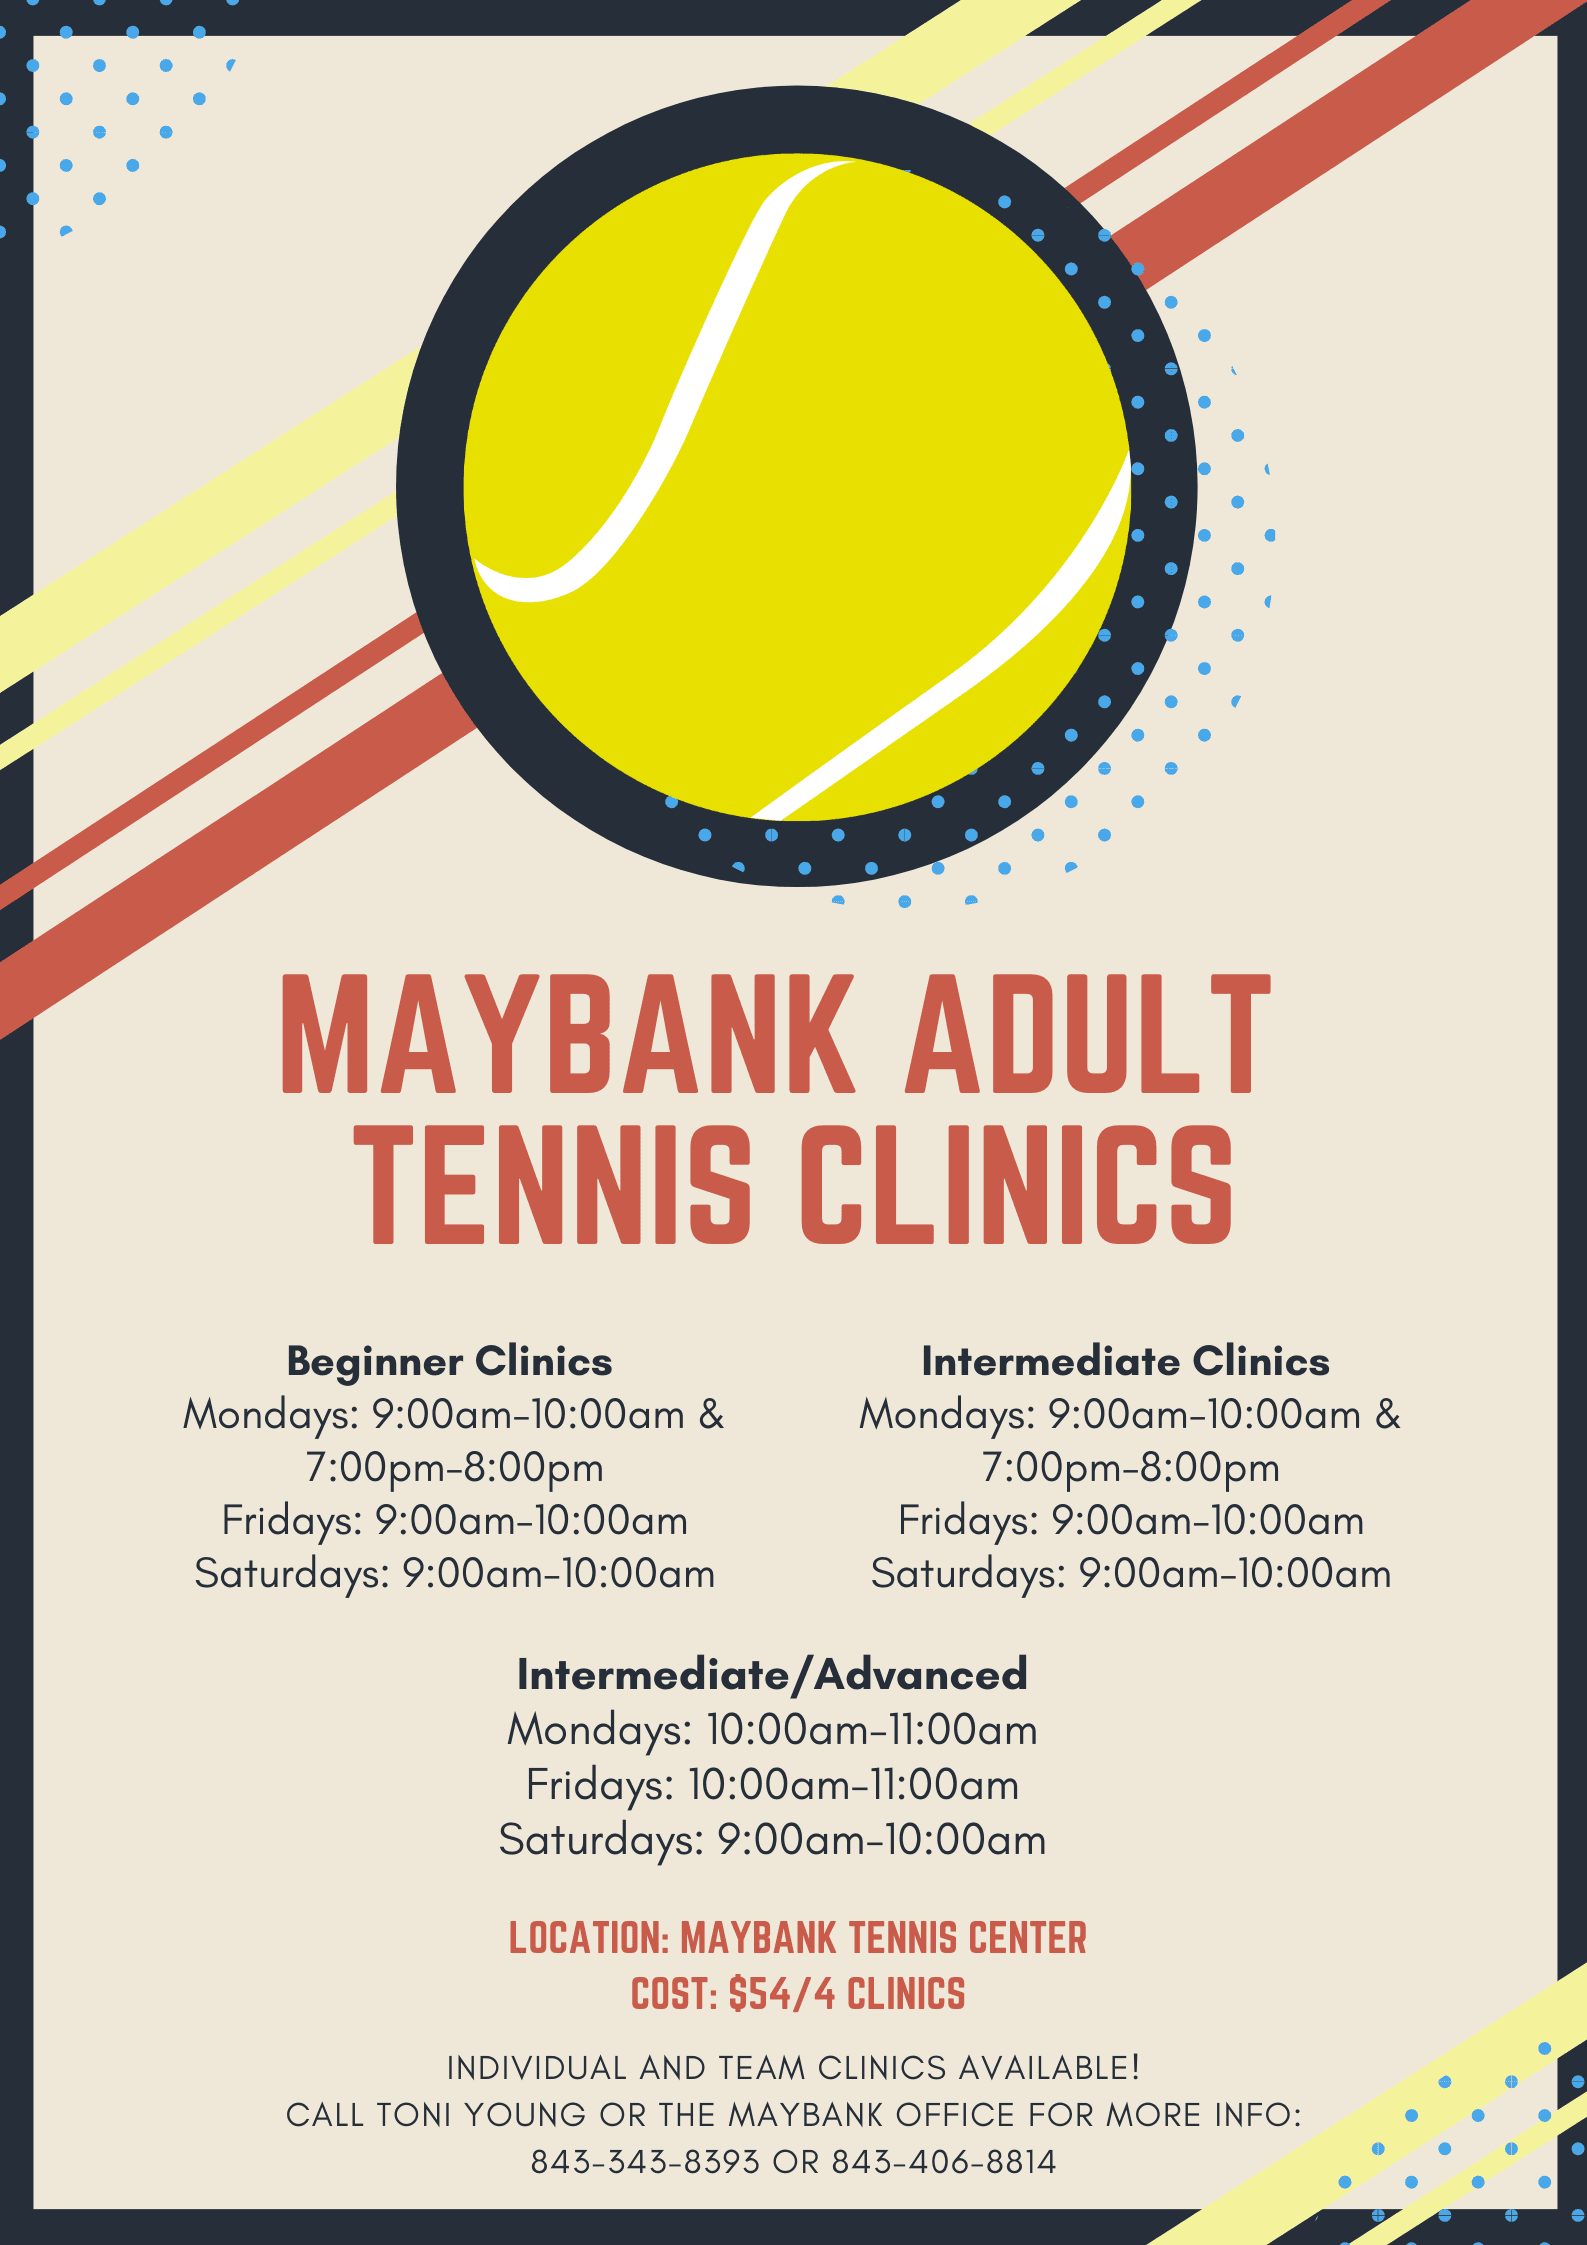 MTC Adult Tennis Clinics Opens in new window